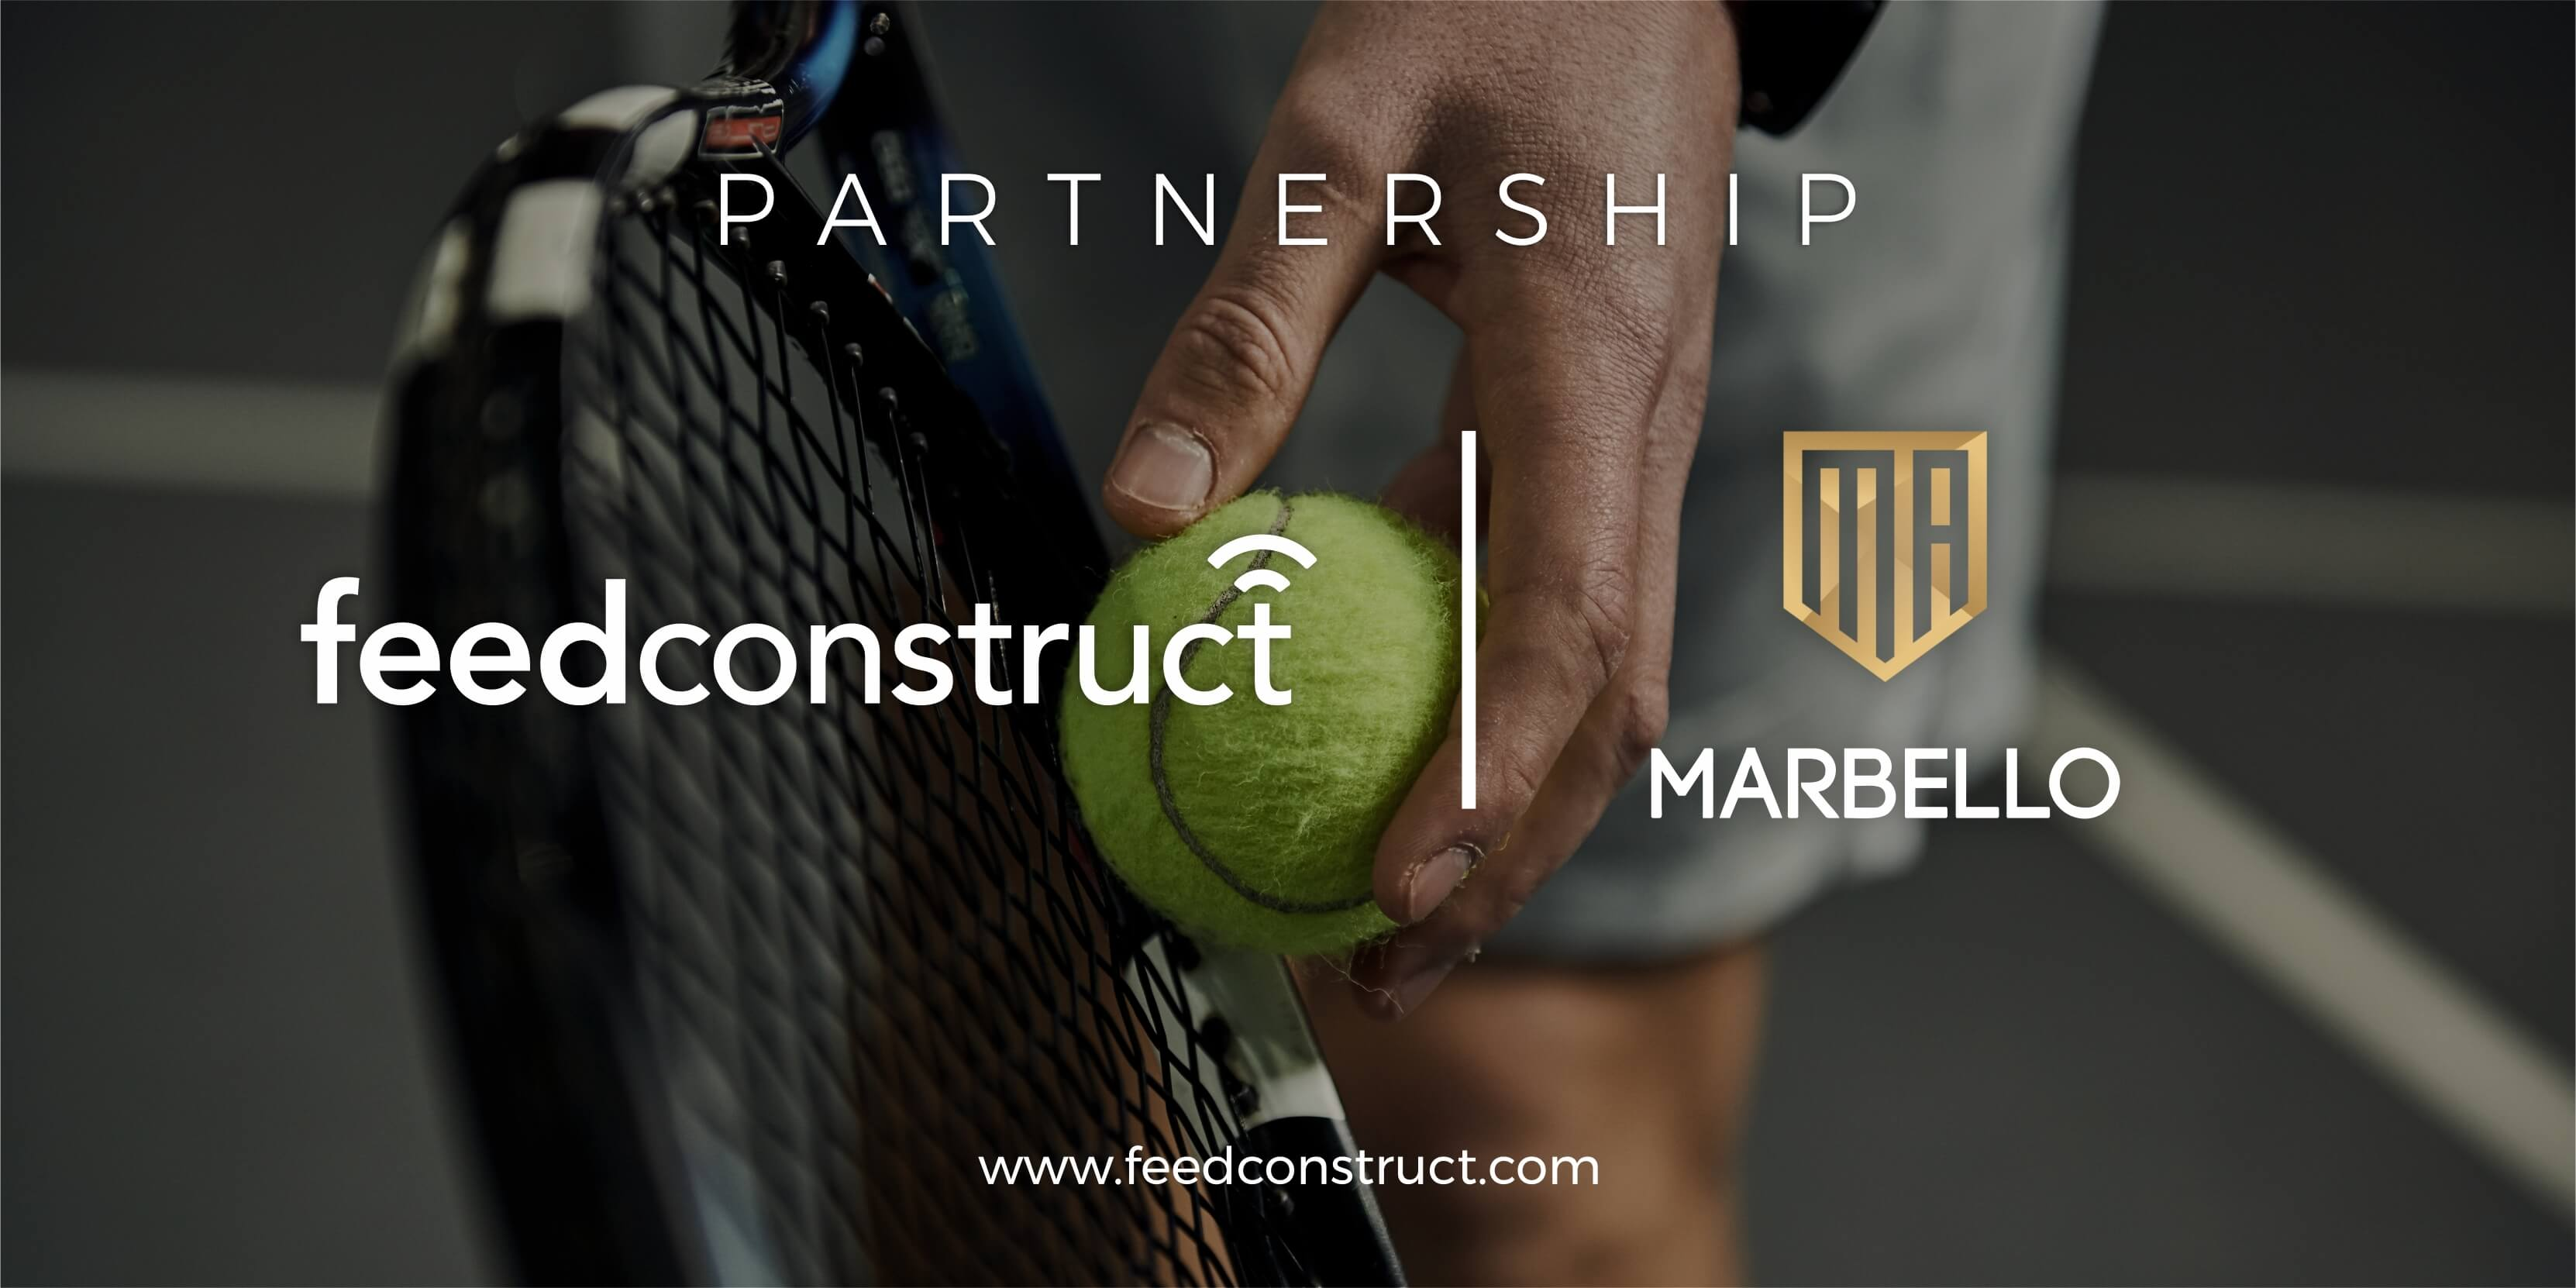 FeedConstruct is an official content partner of the Marbello Exhibition Series